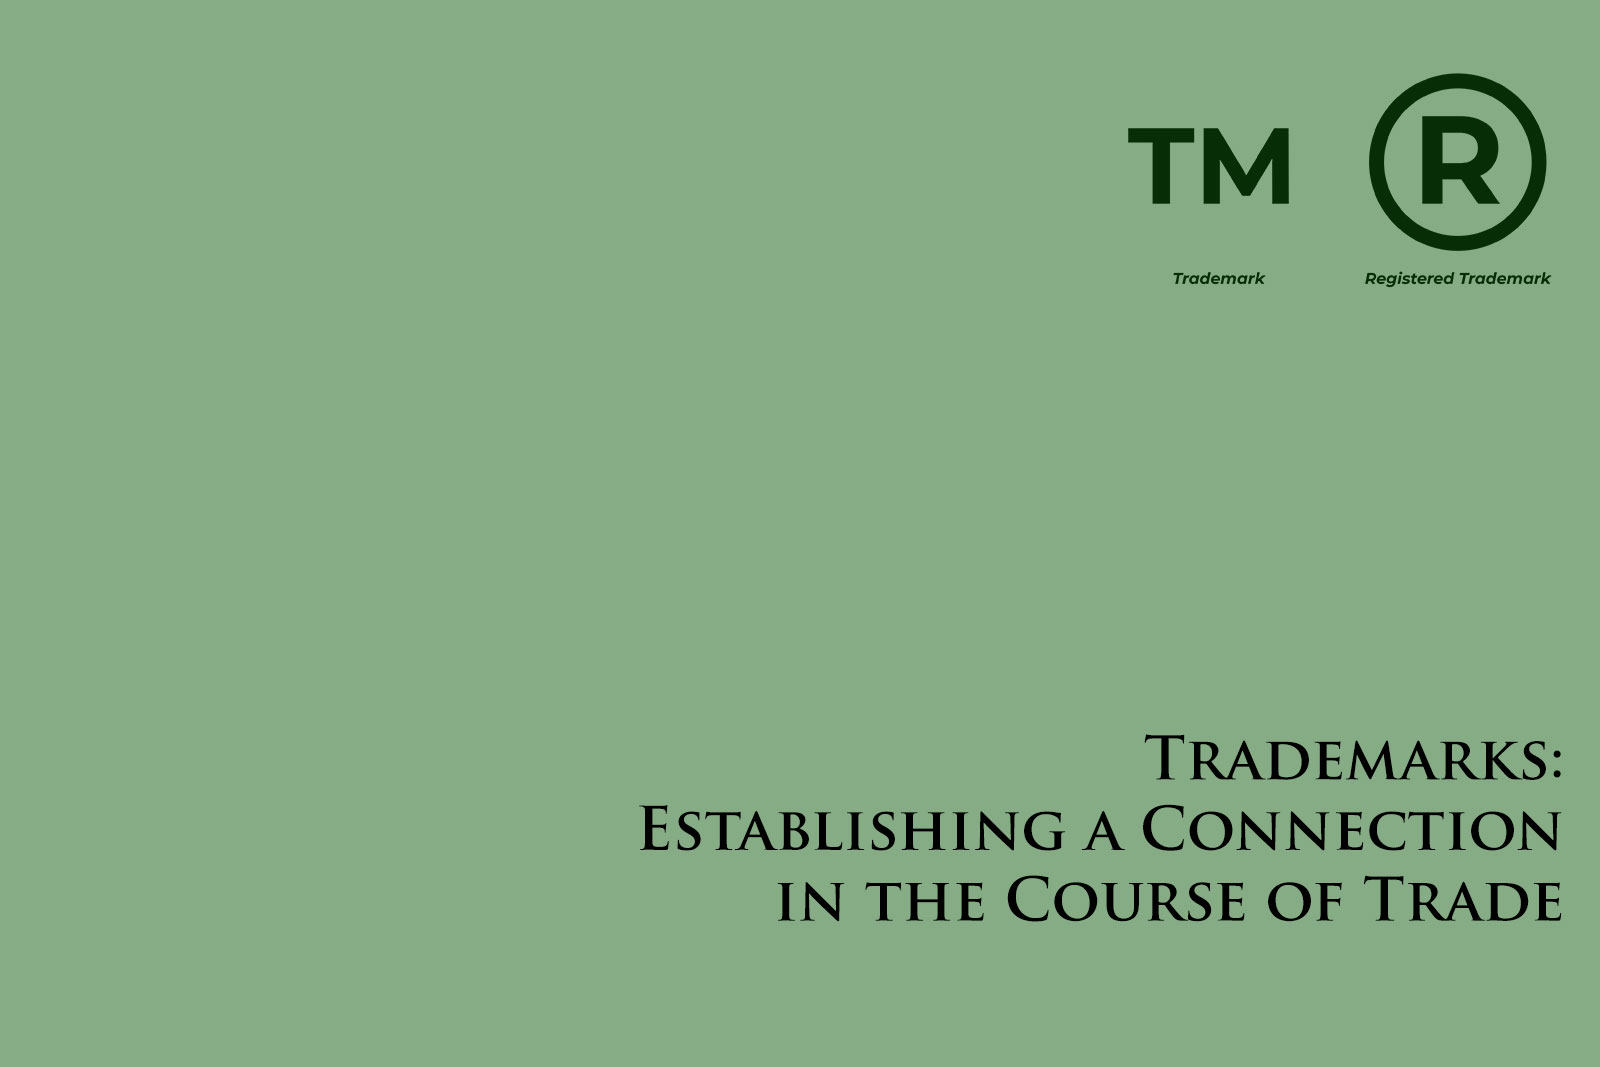 Trademarks: Establishing a Connection in the Course of Trade